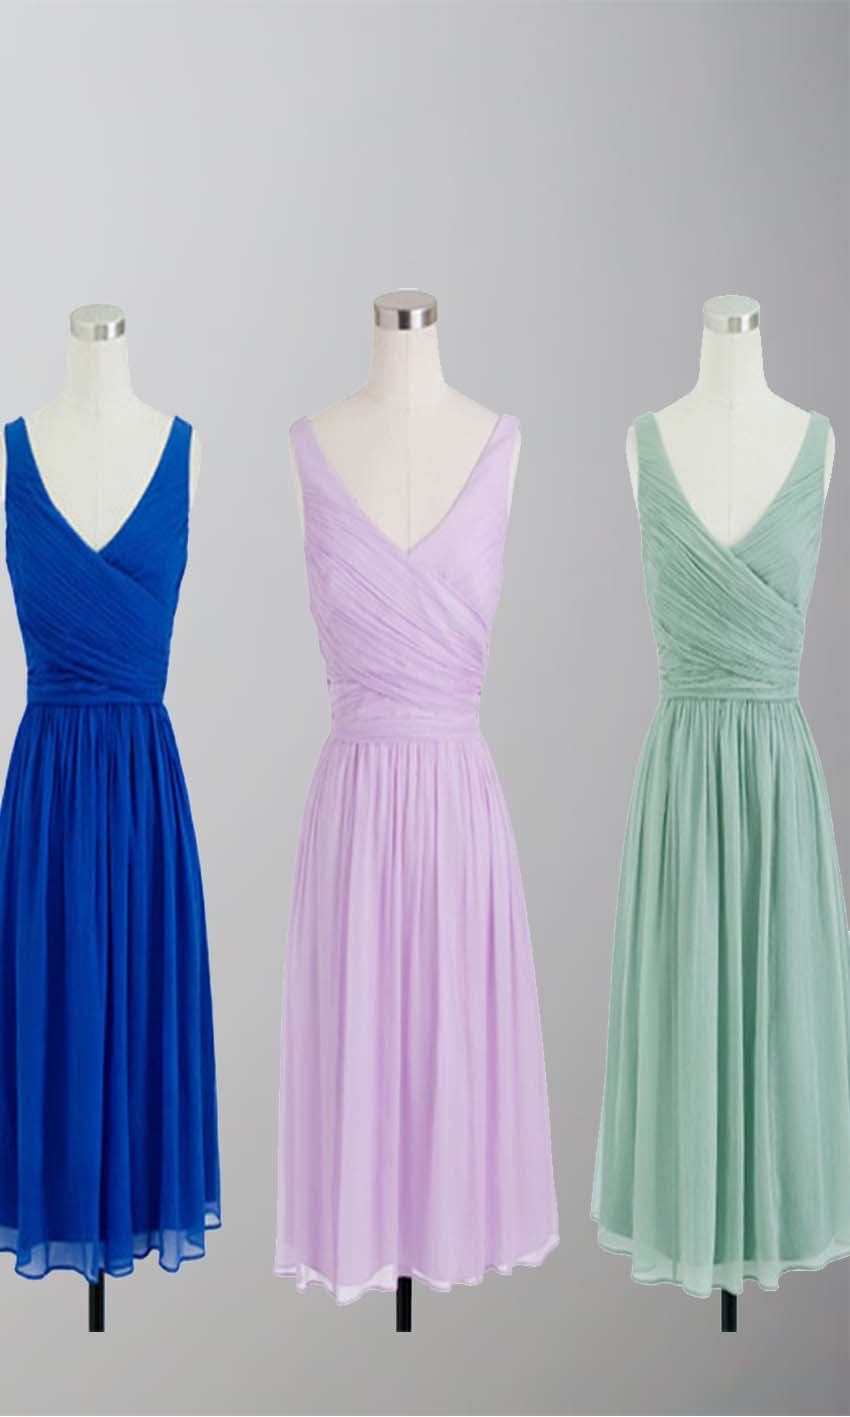 Fitted Aline Draped Short Bridesmaid Dresses KSP175 [KSP175] - £83.00 : Cheap Prom Dresses Uk, Bridesmaid Dresses, 2014 Prom & Evening Dresses, Look for cheap elegant prom dresses 2014, cocktail gowns, or dresses for special occasions? kissprom.co.uk offers various bridesmaid dresses, evening dress, free shipping to UK etc.